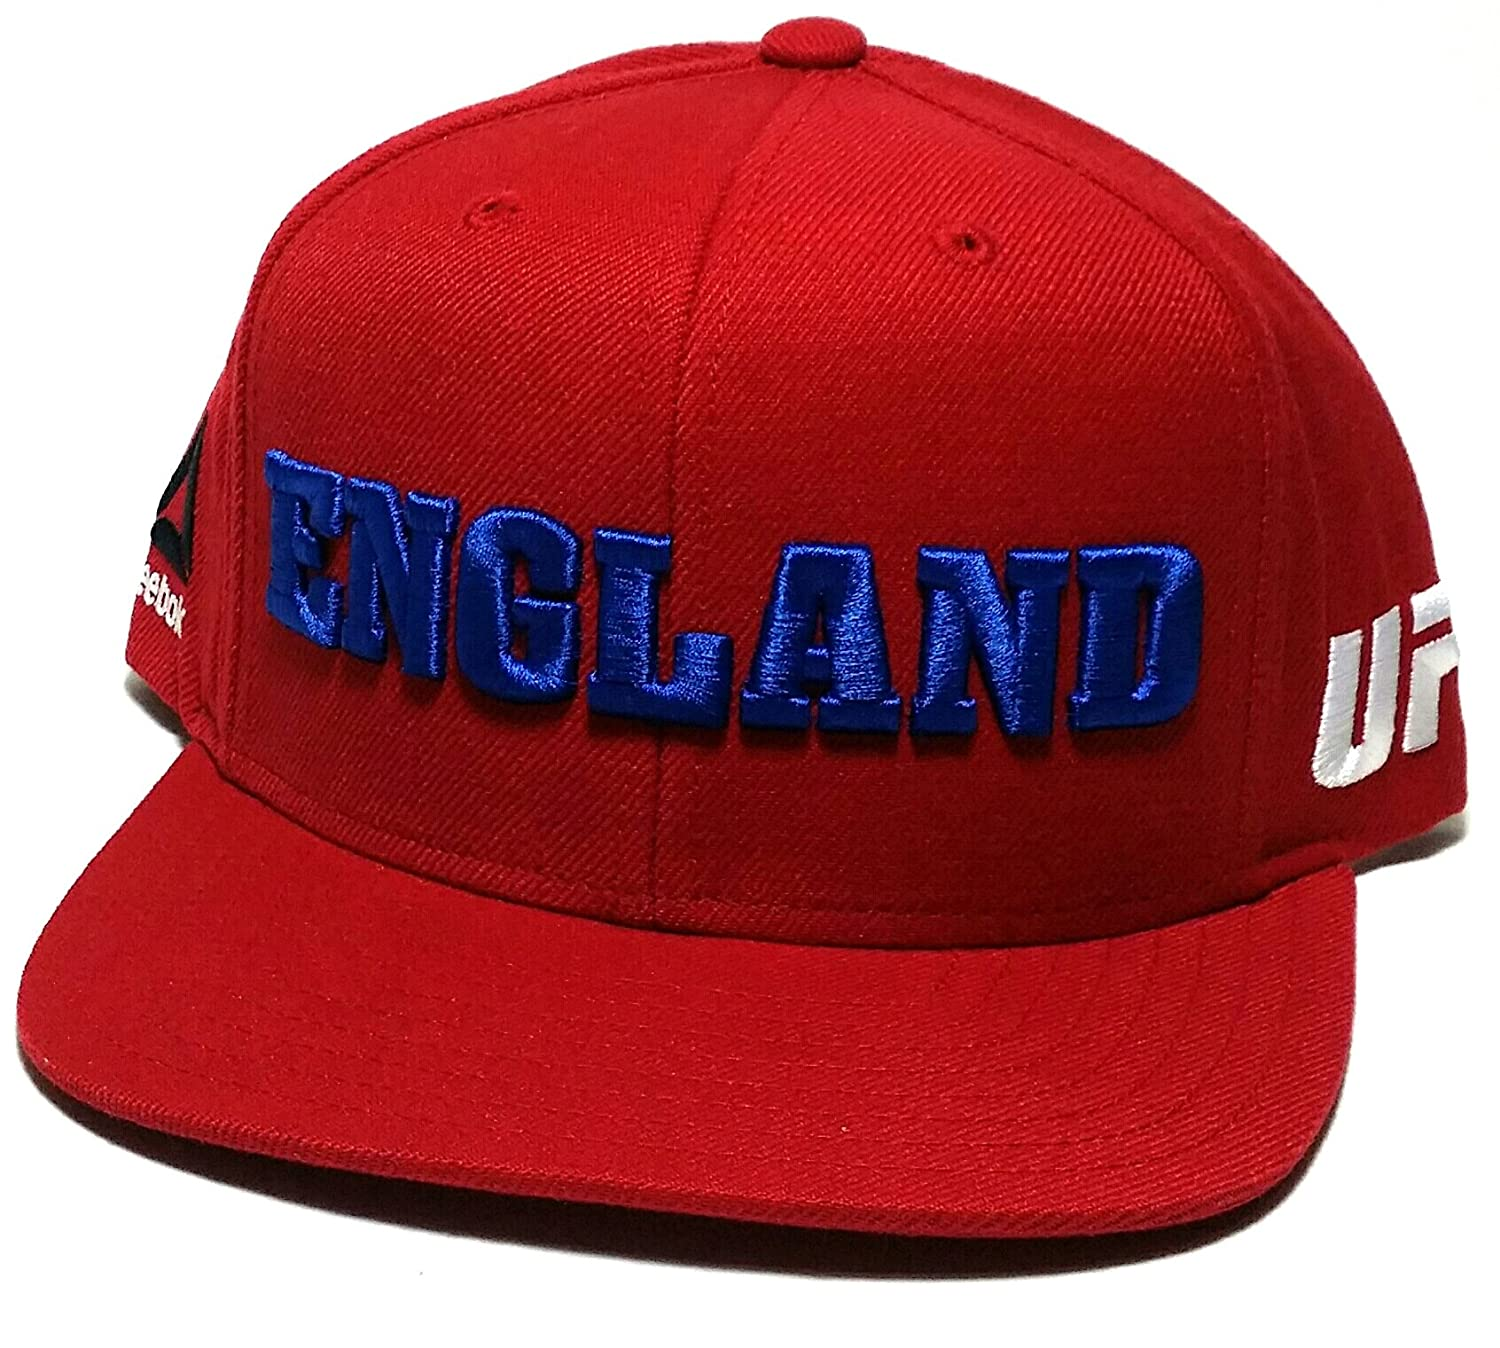 Amazon.com   UFC Reebok MMA Red Blue White England Country Pride Flat  Snapback Adjustable Hat Cap   Sports   Outdoors 8c8e1f14ff26